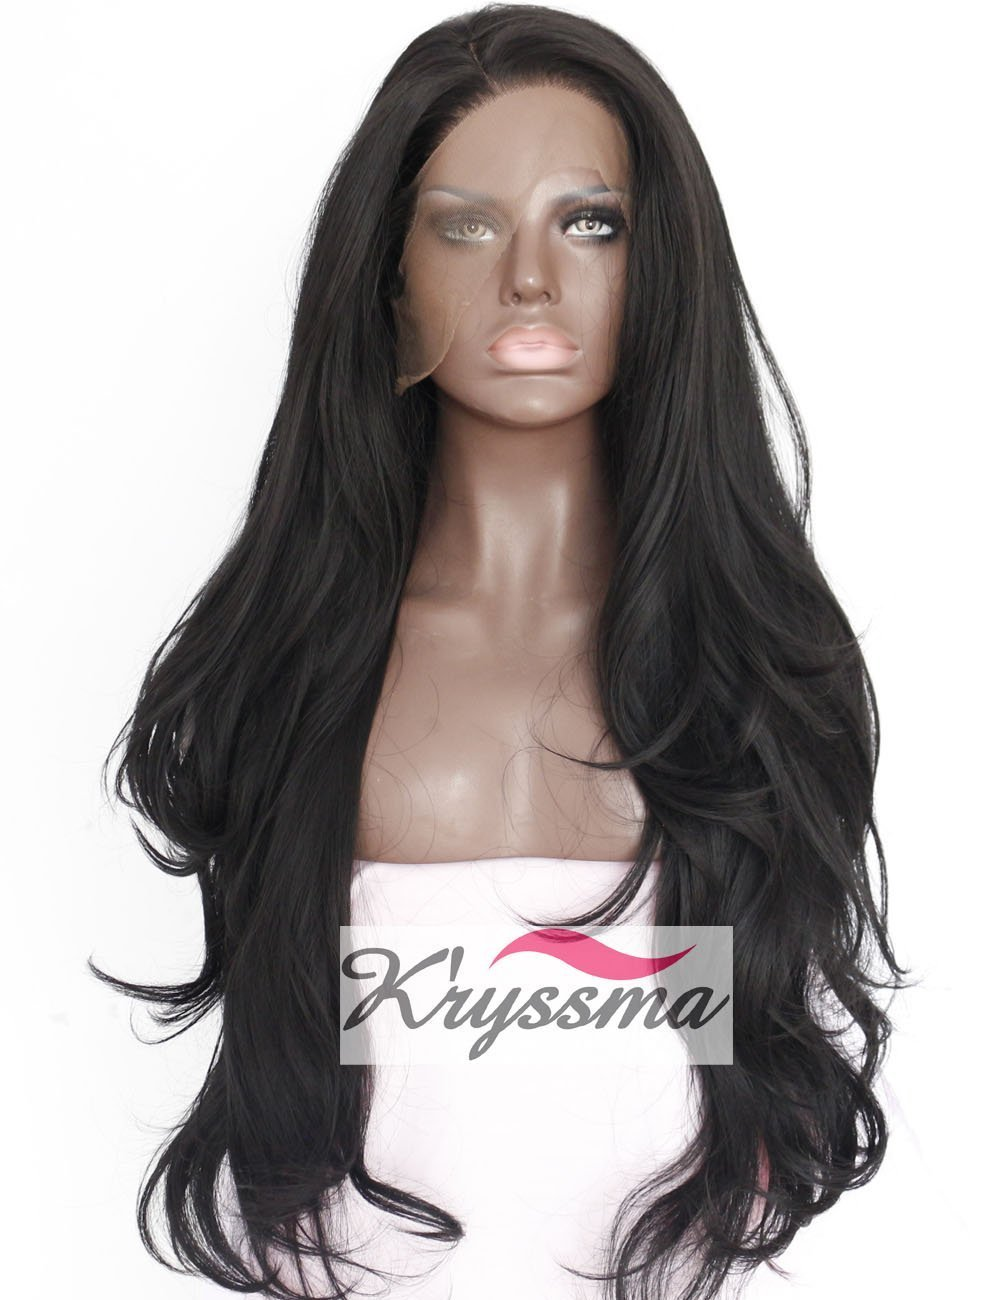 K'ryssma Synthetic Lace Front Wig for Women Natural Wave Long Wigs Heat Resistant Fiber Hair Black #1b 22 Inches SLFW15Y08M26D-BS22